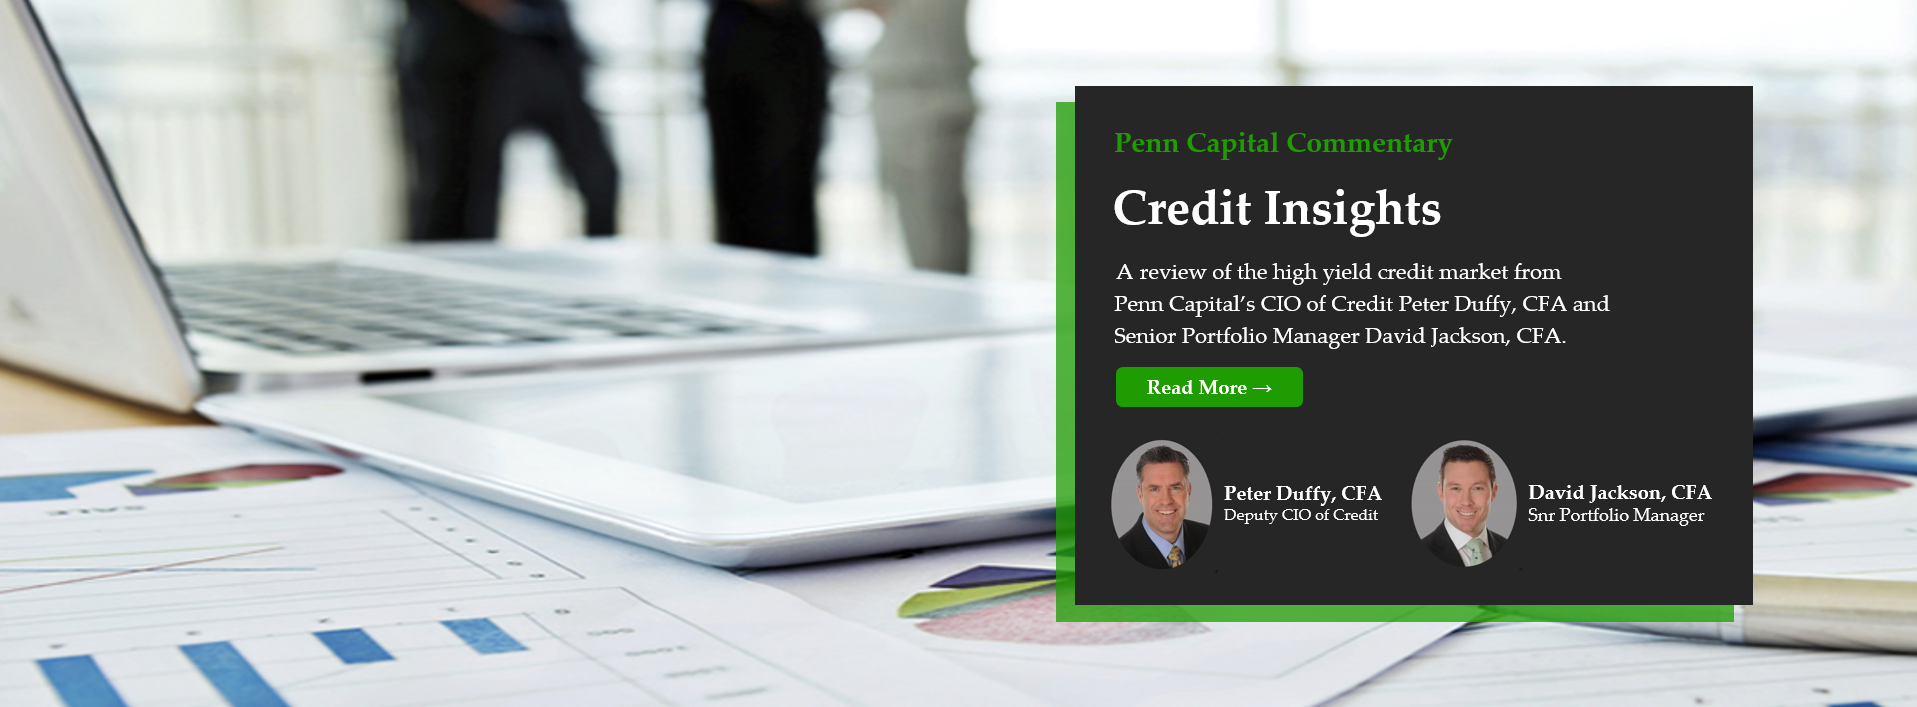 Penn Capital Credit Insights